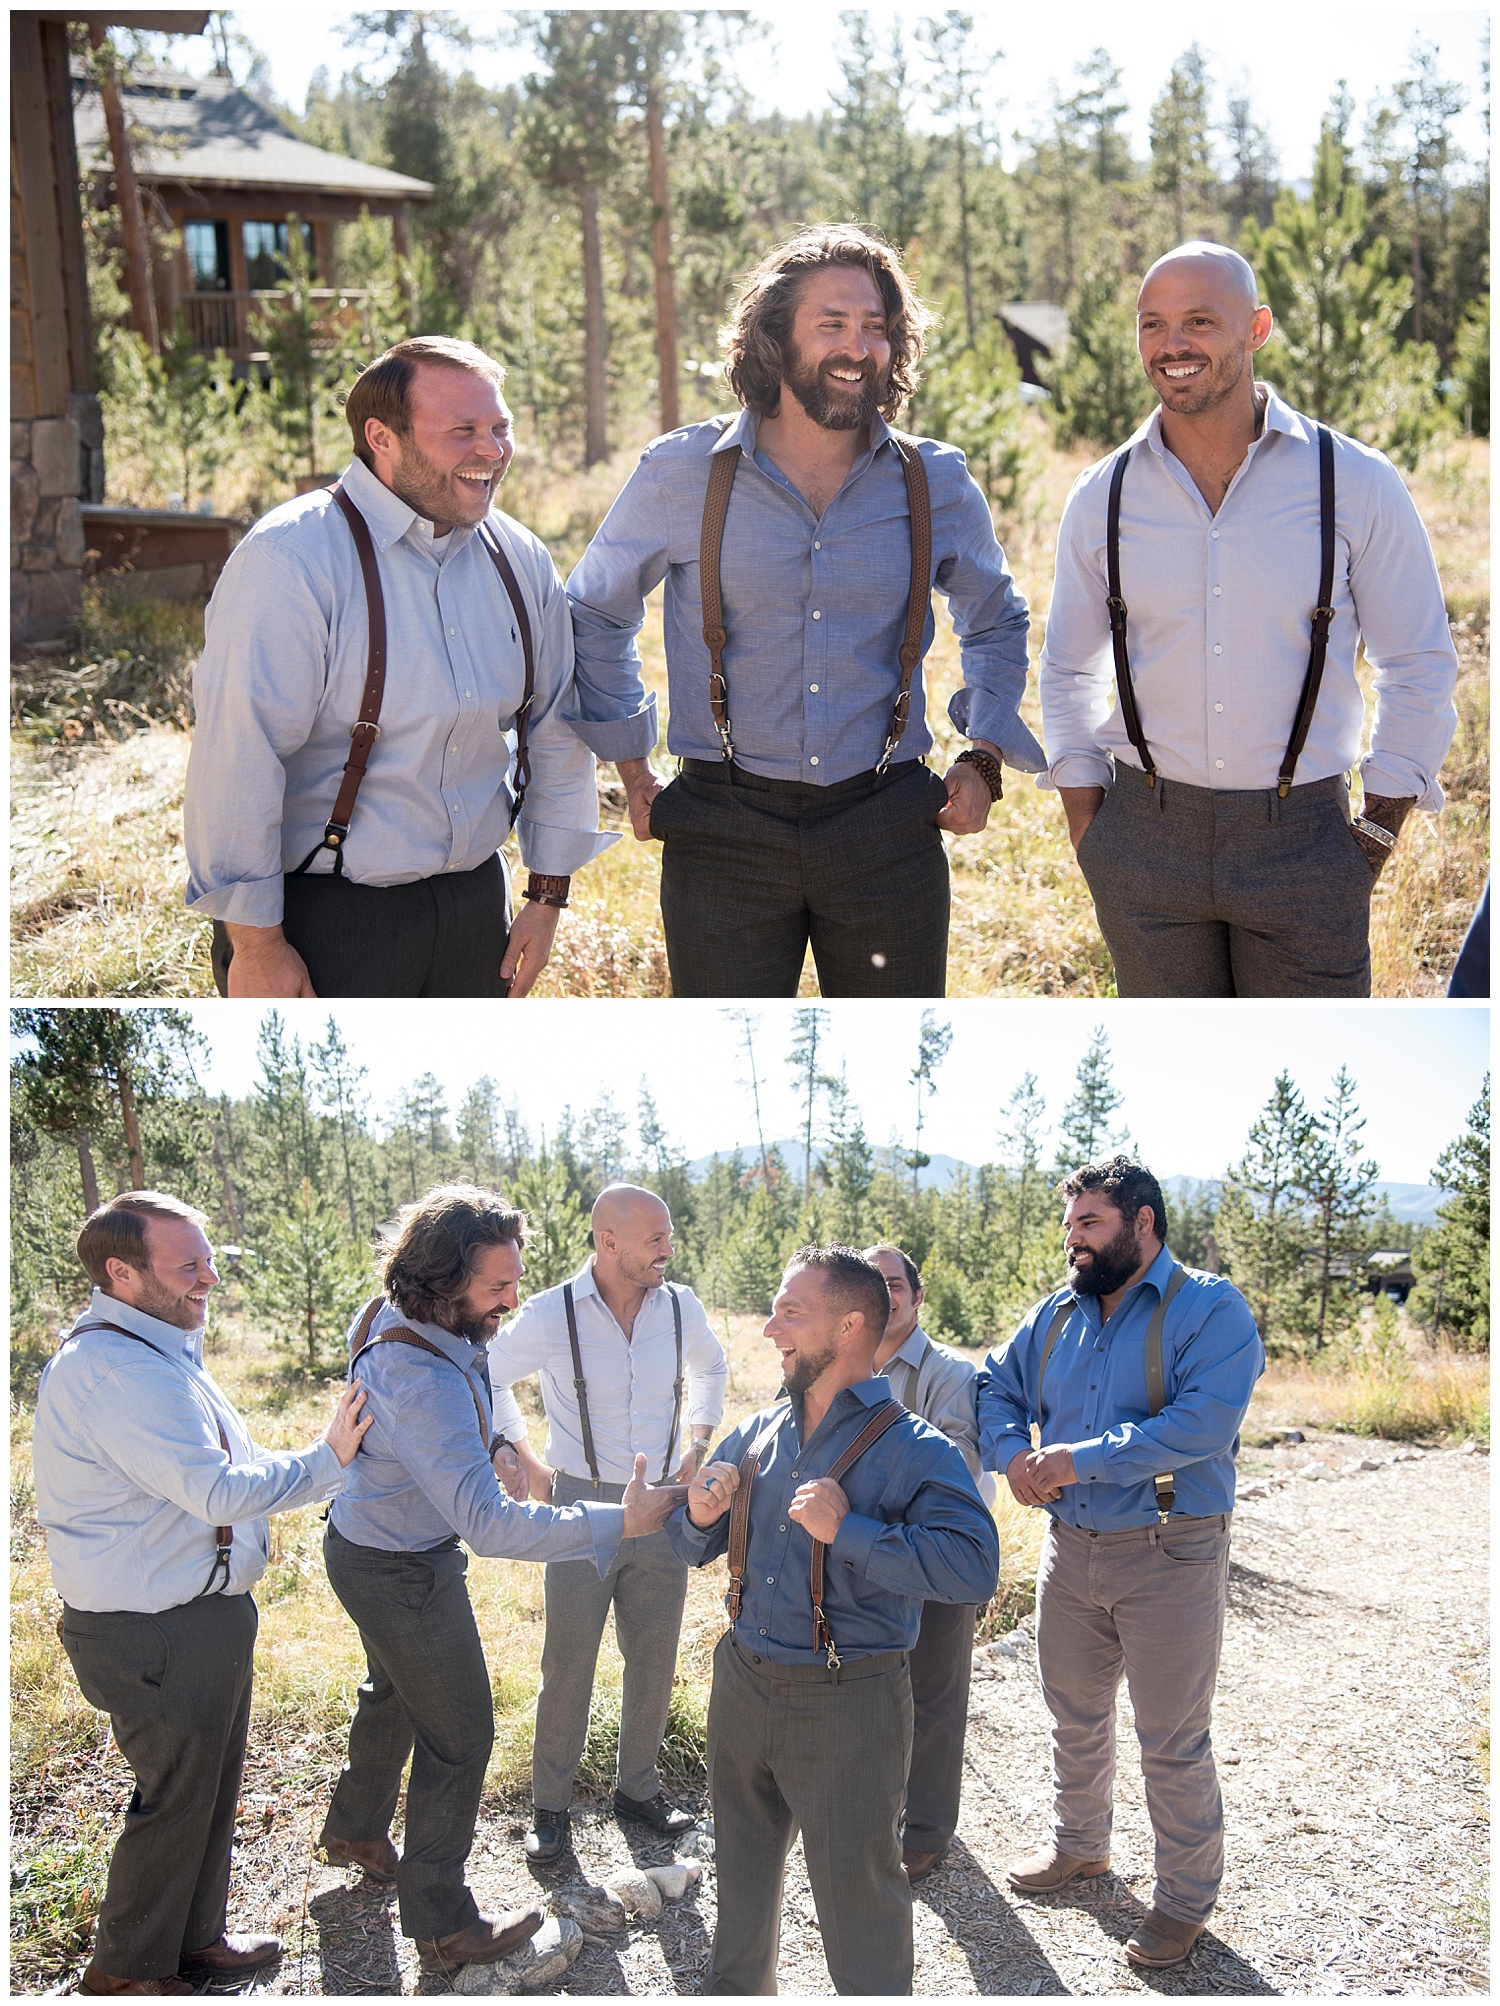 Groomsmen in Suspenders Smiling | Carolyn and Shawn's Wild Horse Inn Wedding at Devil's Thumb Ranch | Fraser Colorado Photography | Farm Wedding Photographer | Apollo Fields Wedding Photojournalism